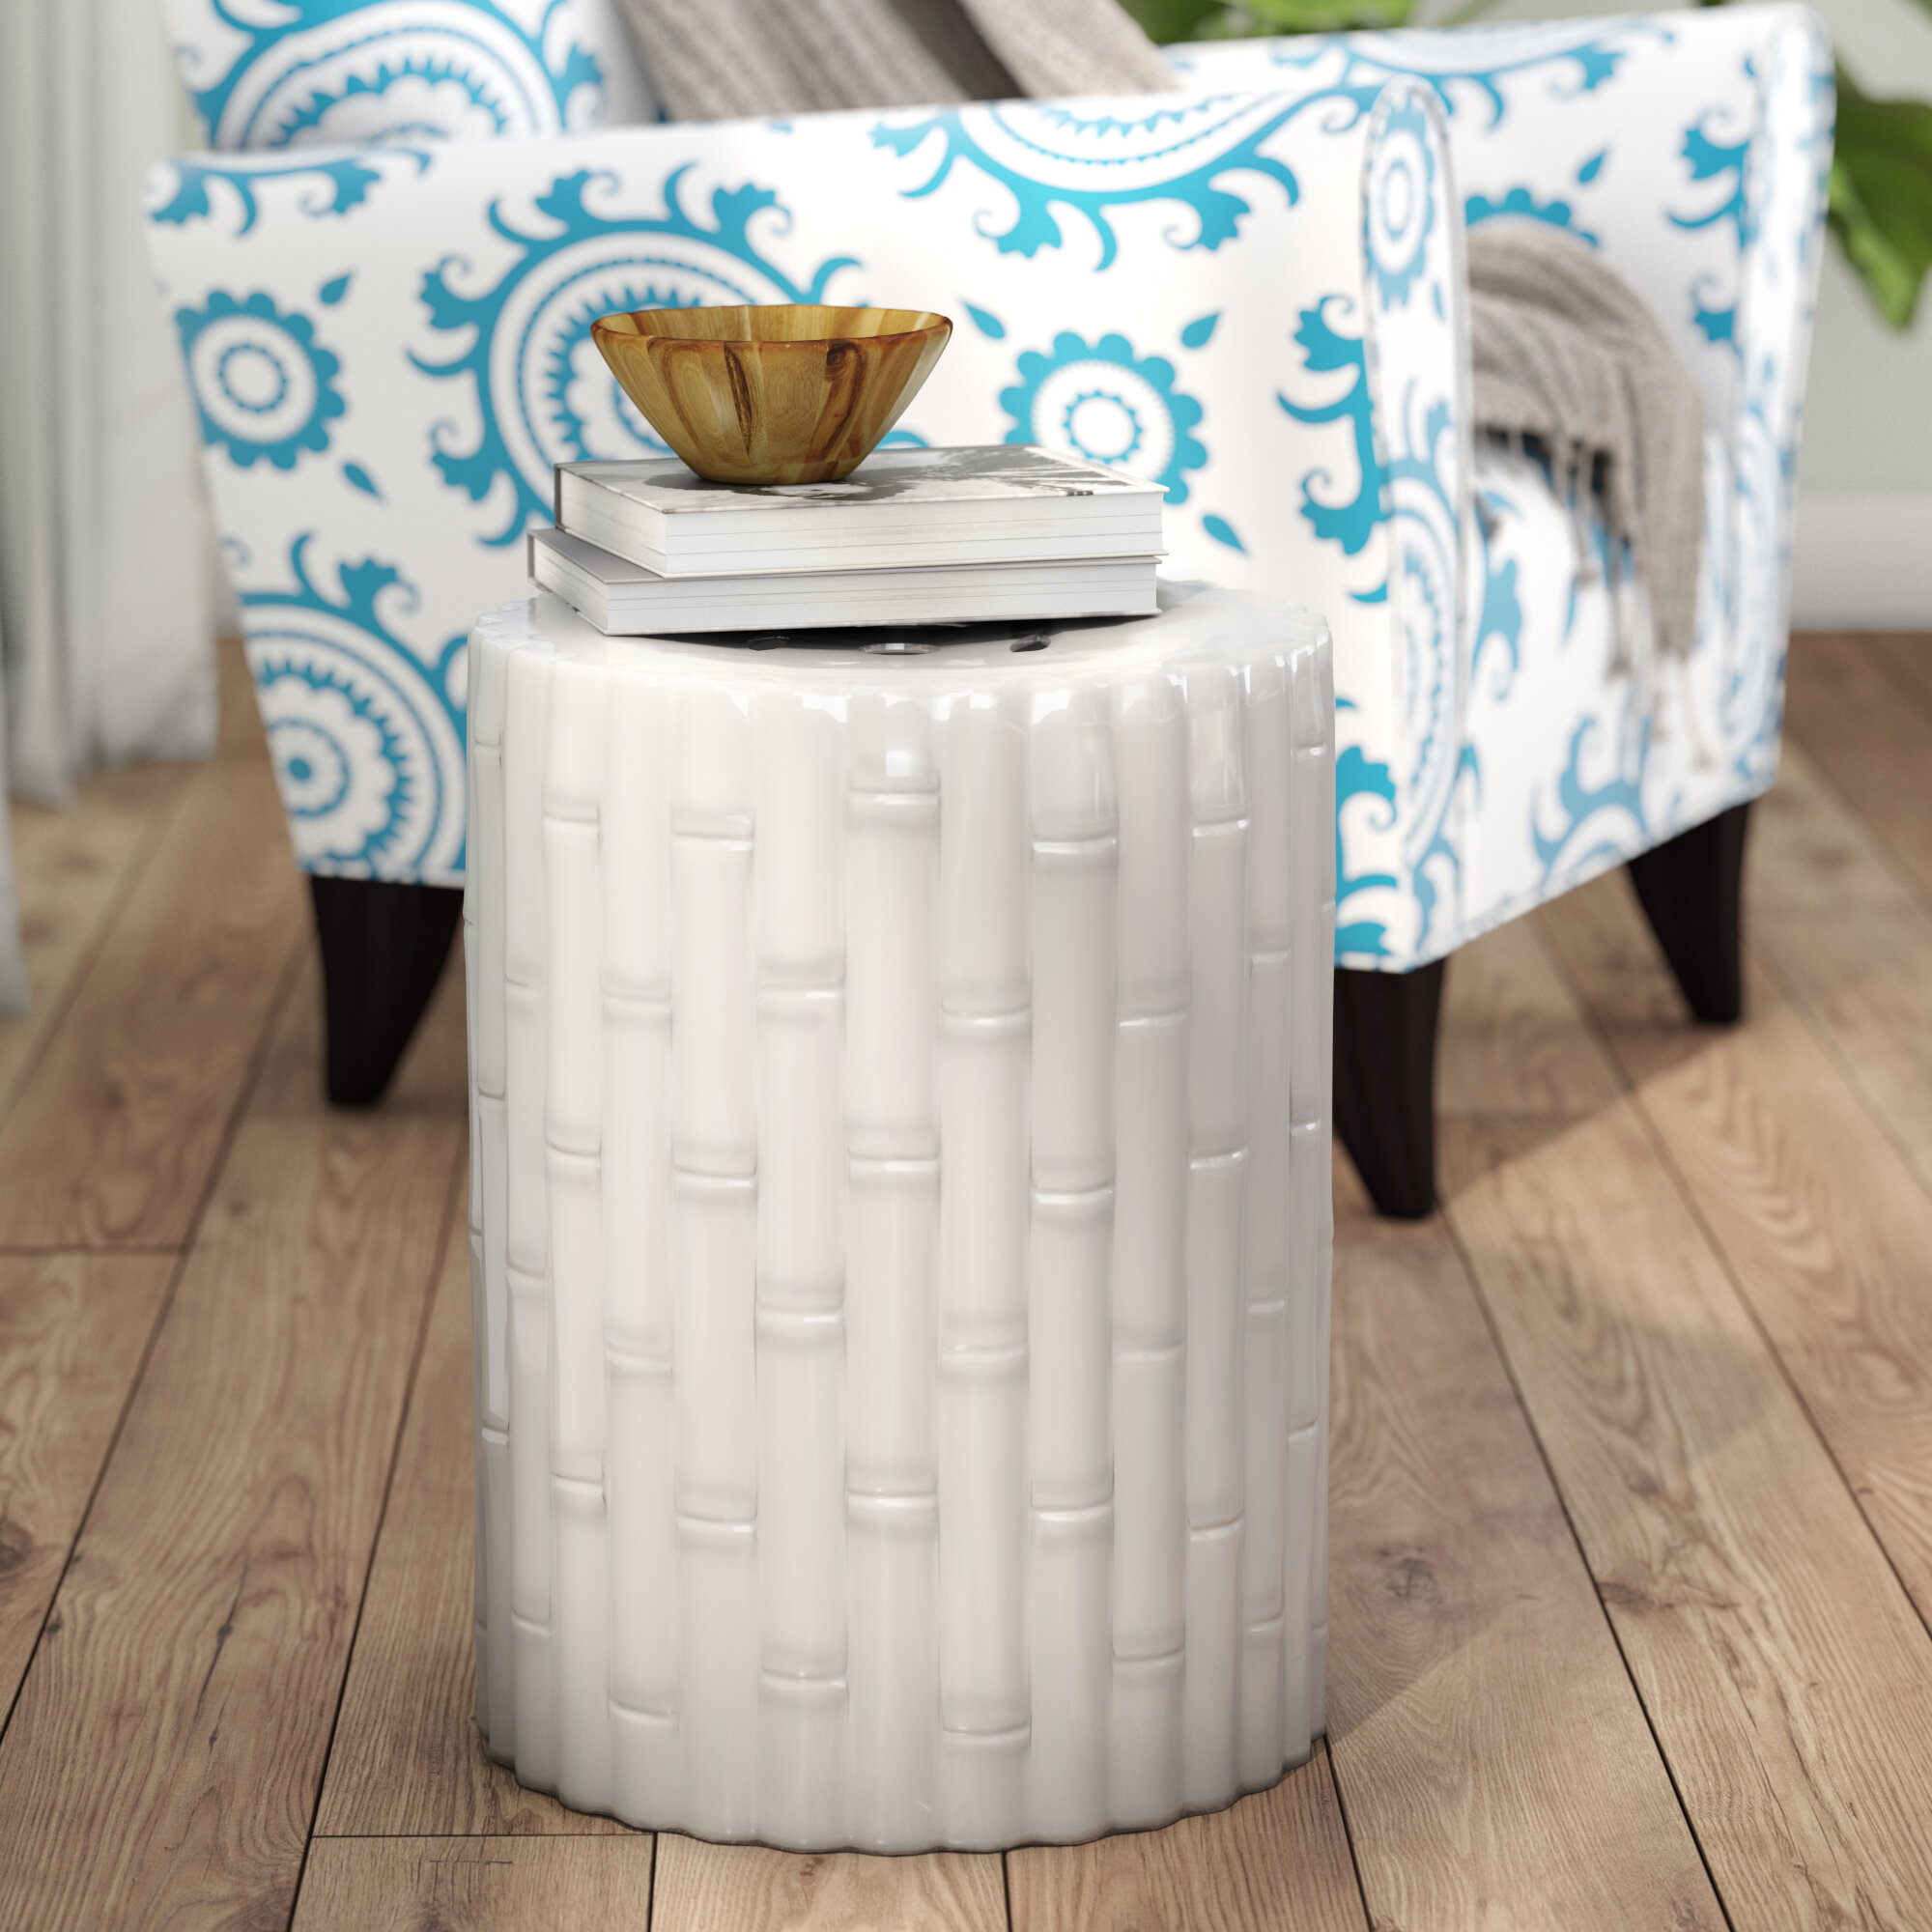 Ceramic Garden Accent Stools You'Ll Love In 2020 | Wayfair With Regard To Bonville Ceramic Garden Stools (View 10 of 25)